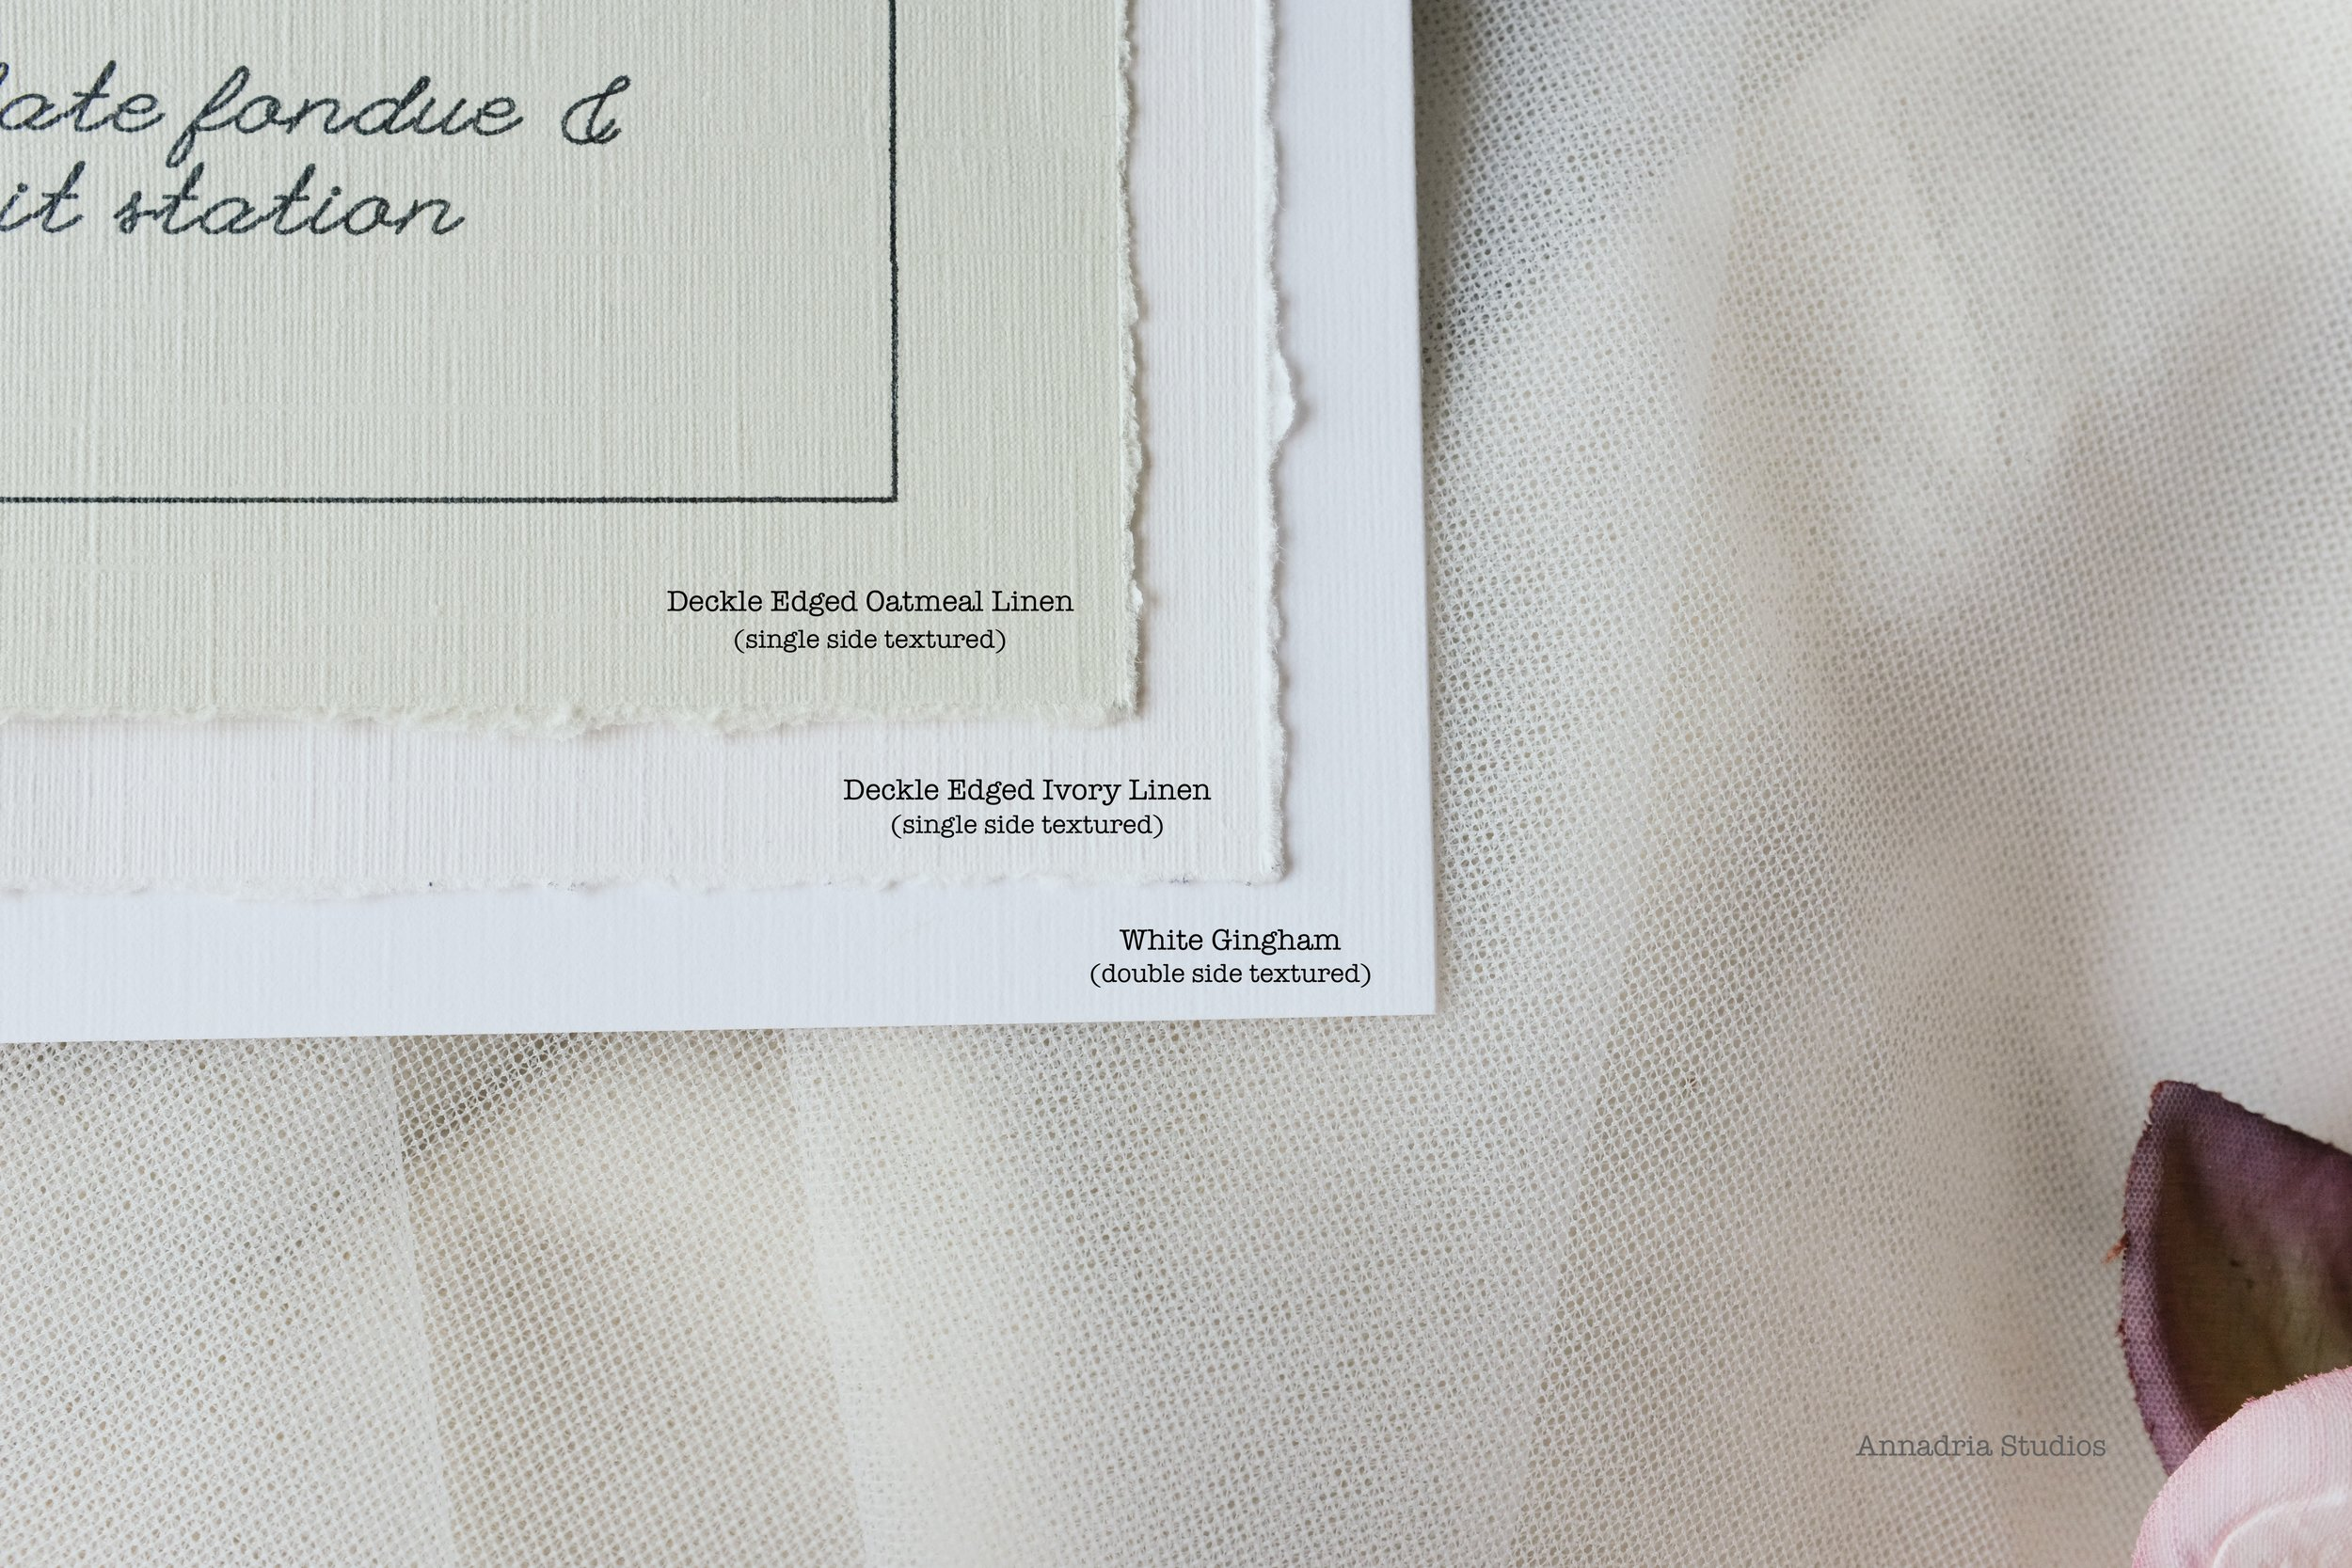 Choice of cardstock for menus and program booklets: White Gingham, Deckle Edge Oatmeal Linen, Deckle Edge Ivory Linen